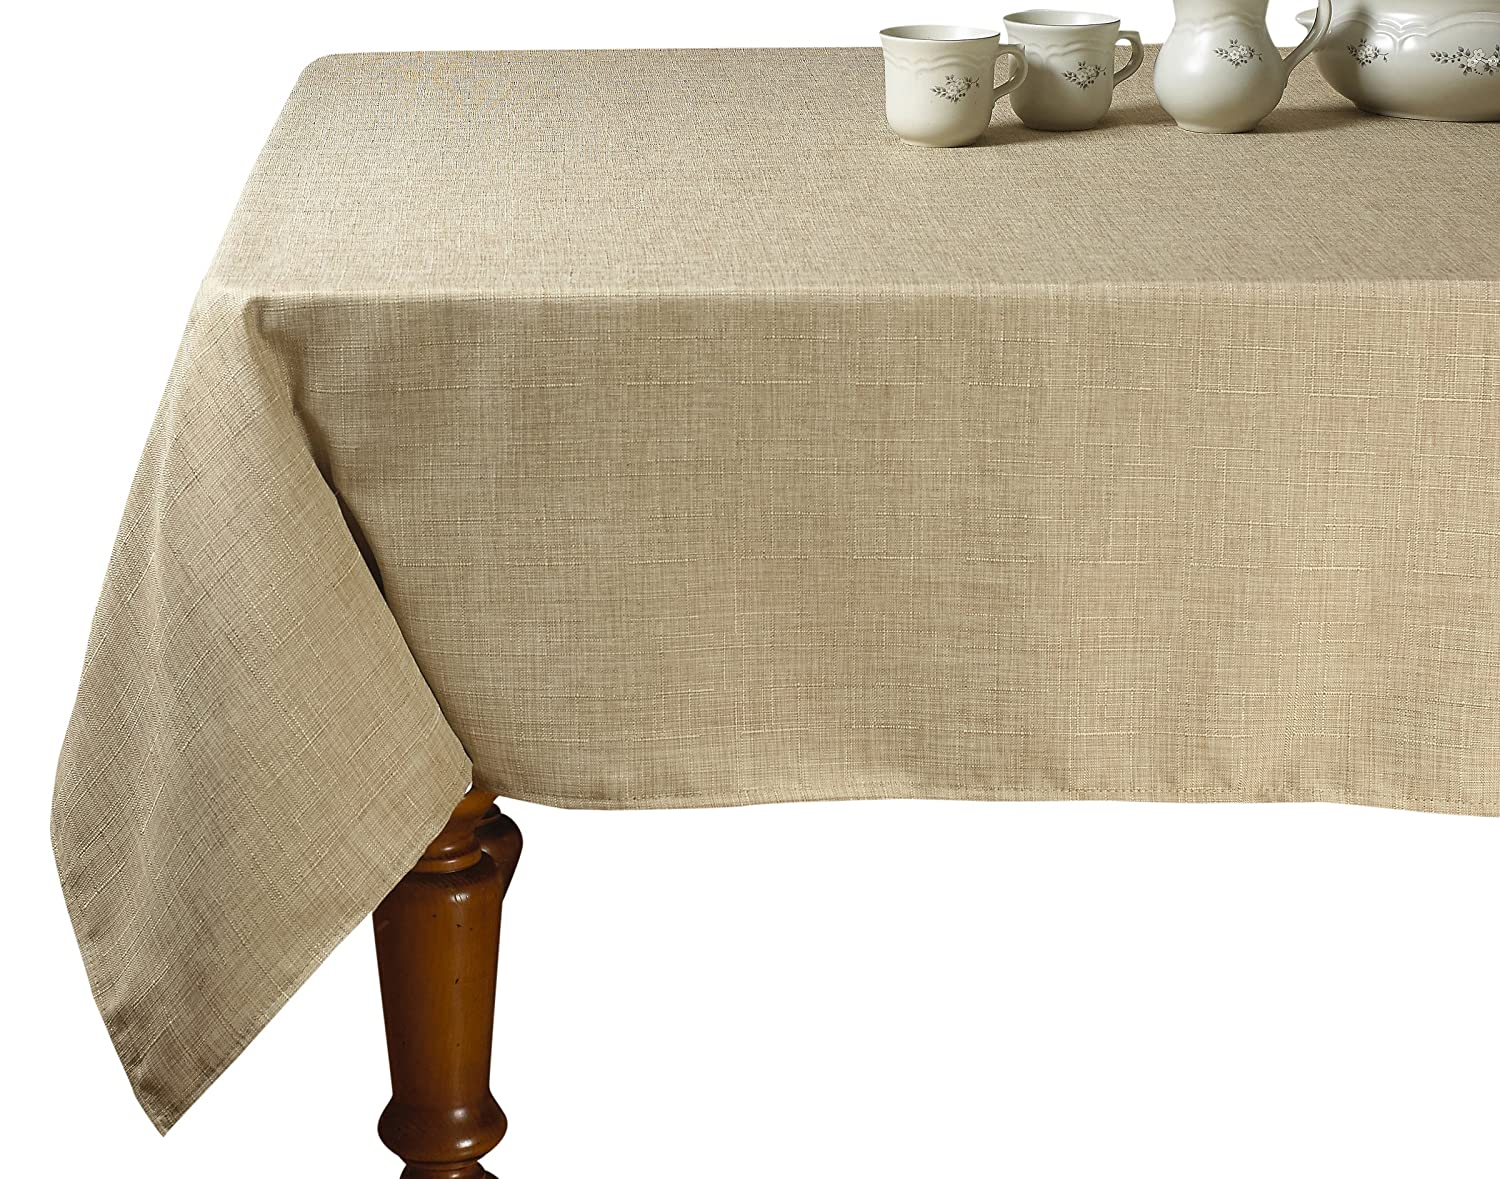 Violet Linen Euro Vintage Design Oblong/Rectangle Tablecloth, 54 x 72, Cranberry 54 x 72 EURO LINEN CB-2